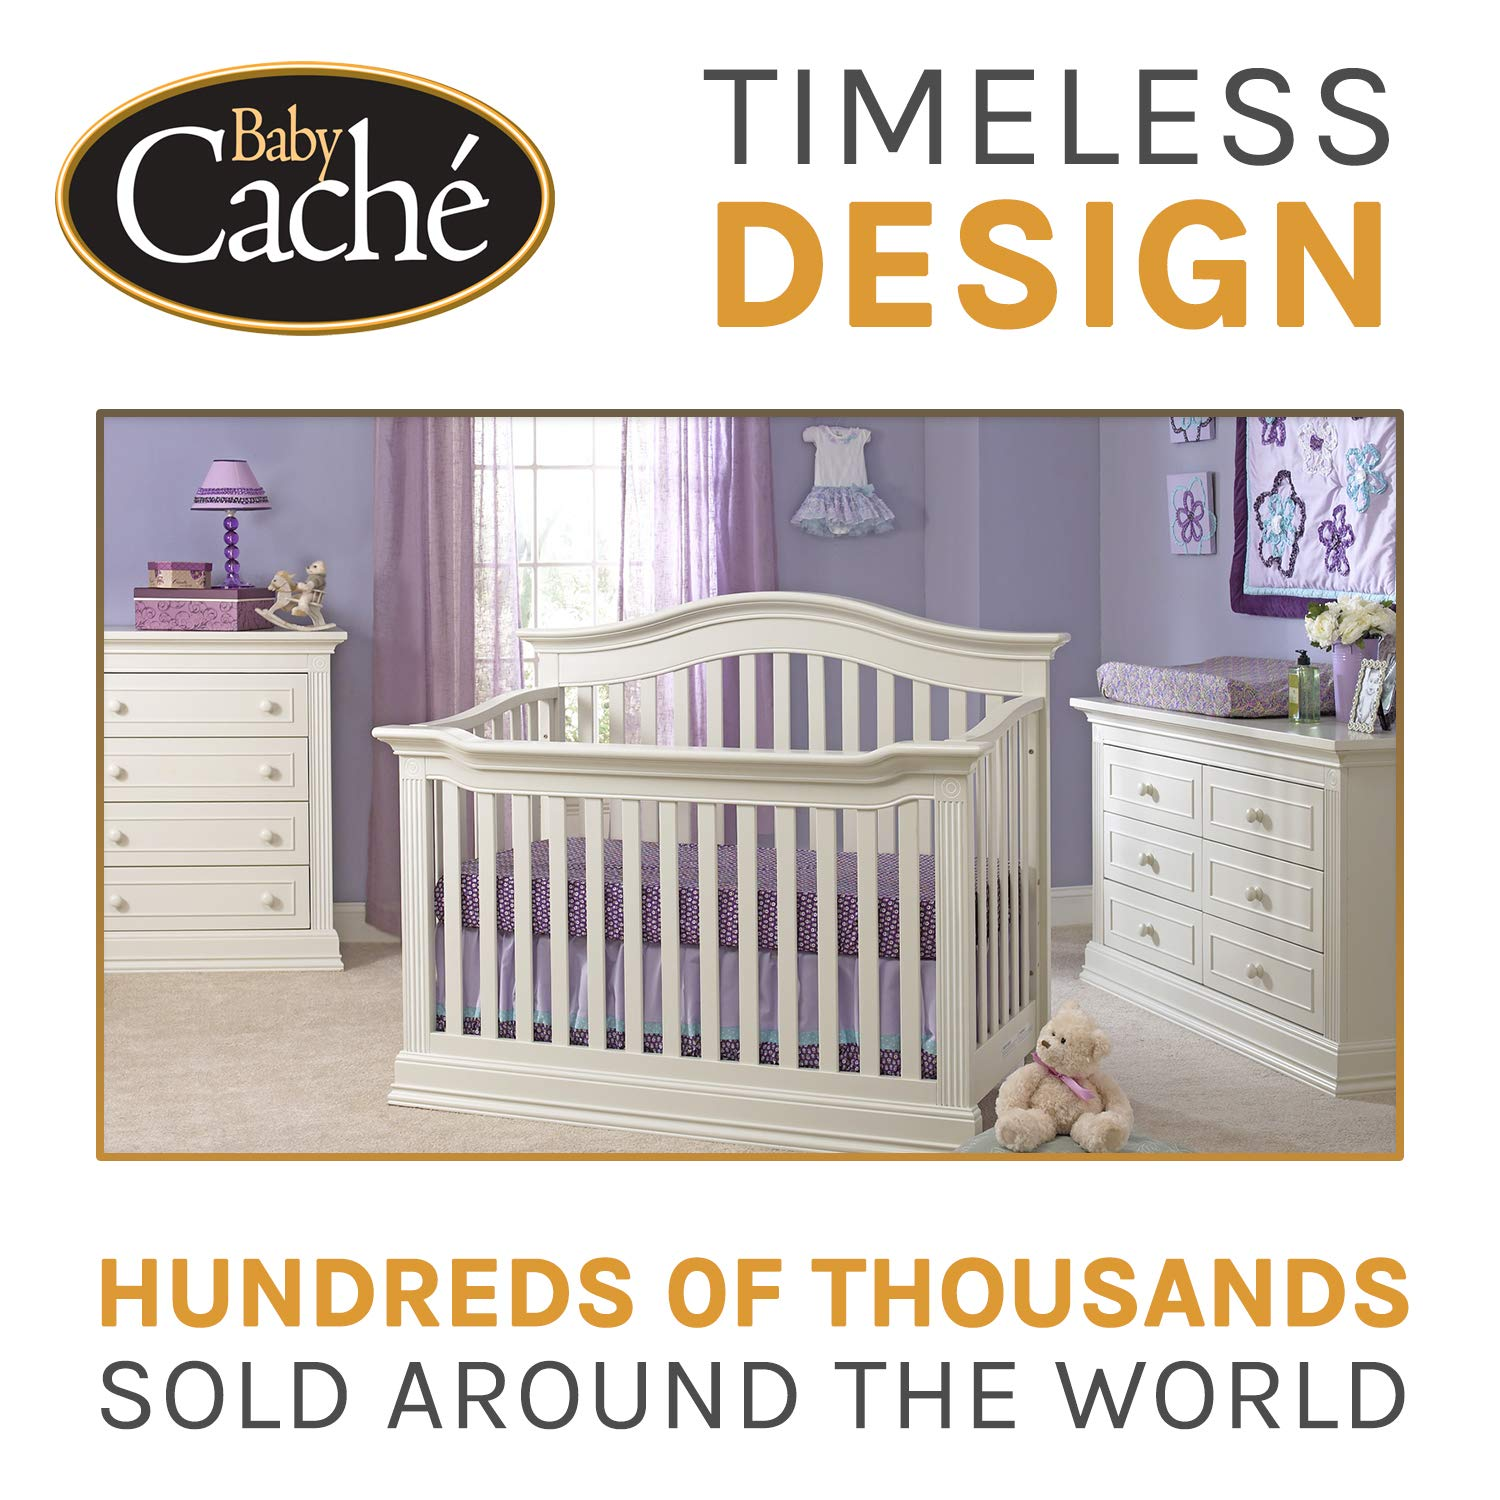 Baby Cache Montana Collection Natural Hardwood 6 Drawer Dresser | Lasting Quality & Design | Kiln-dried & Hand-Crafted Construction | 56'' x 18.5'' x 34'', Glazed White by Baby Cache (Image #5)